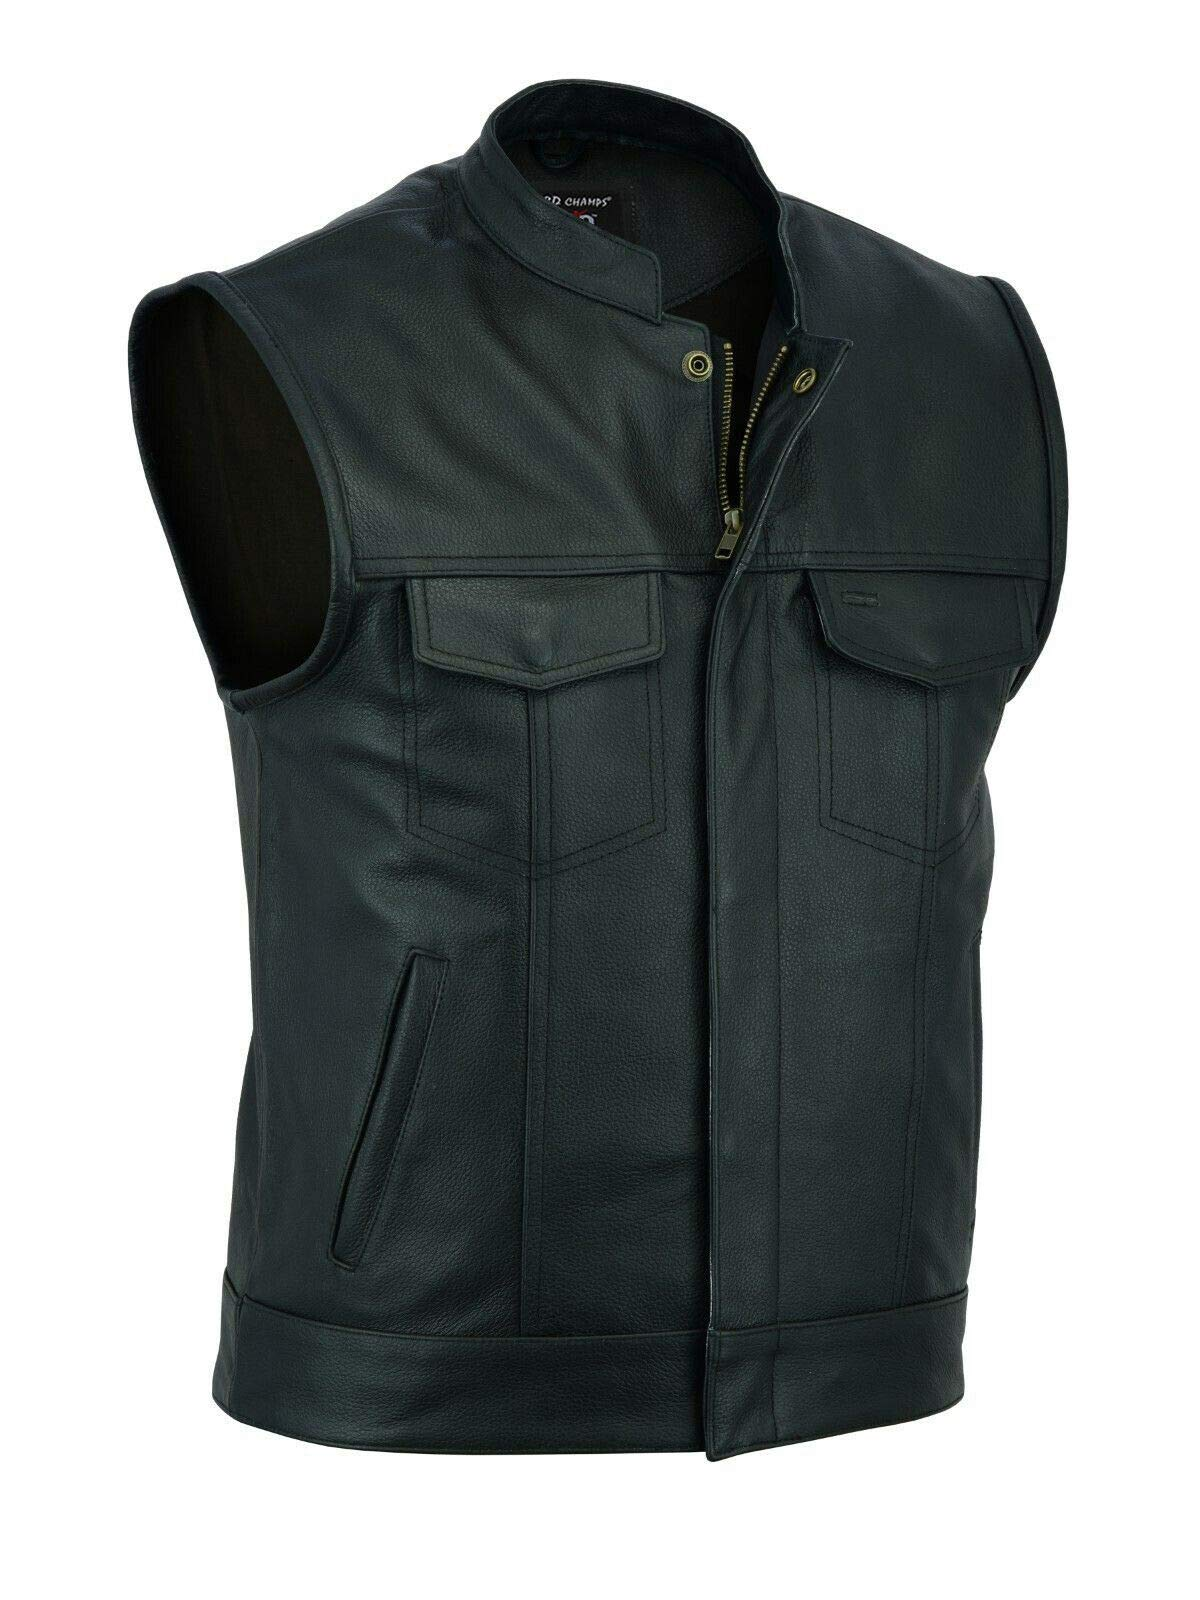 ARD Men's SOA Motorcycle Genuine Cowhide Leather Club Style Vest with Concealed Gun Pockets New S-6XL (Medium)